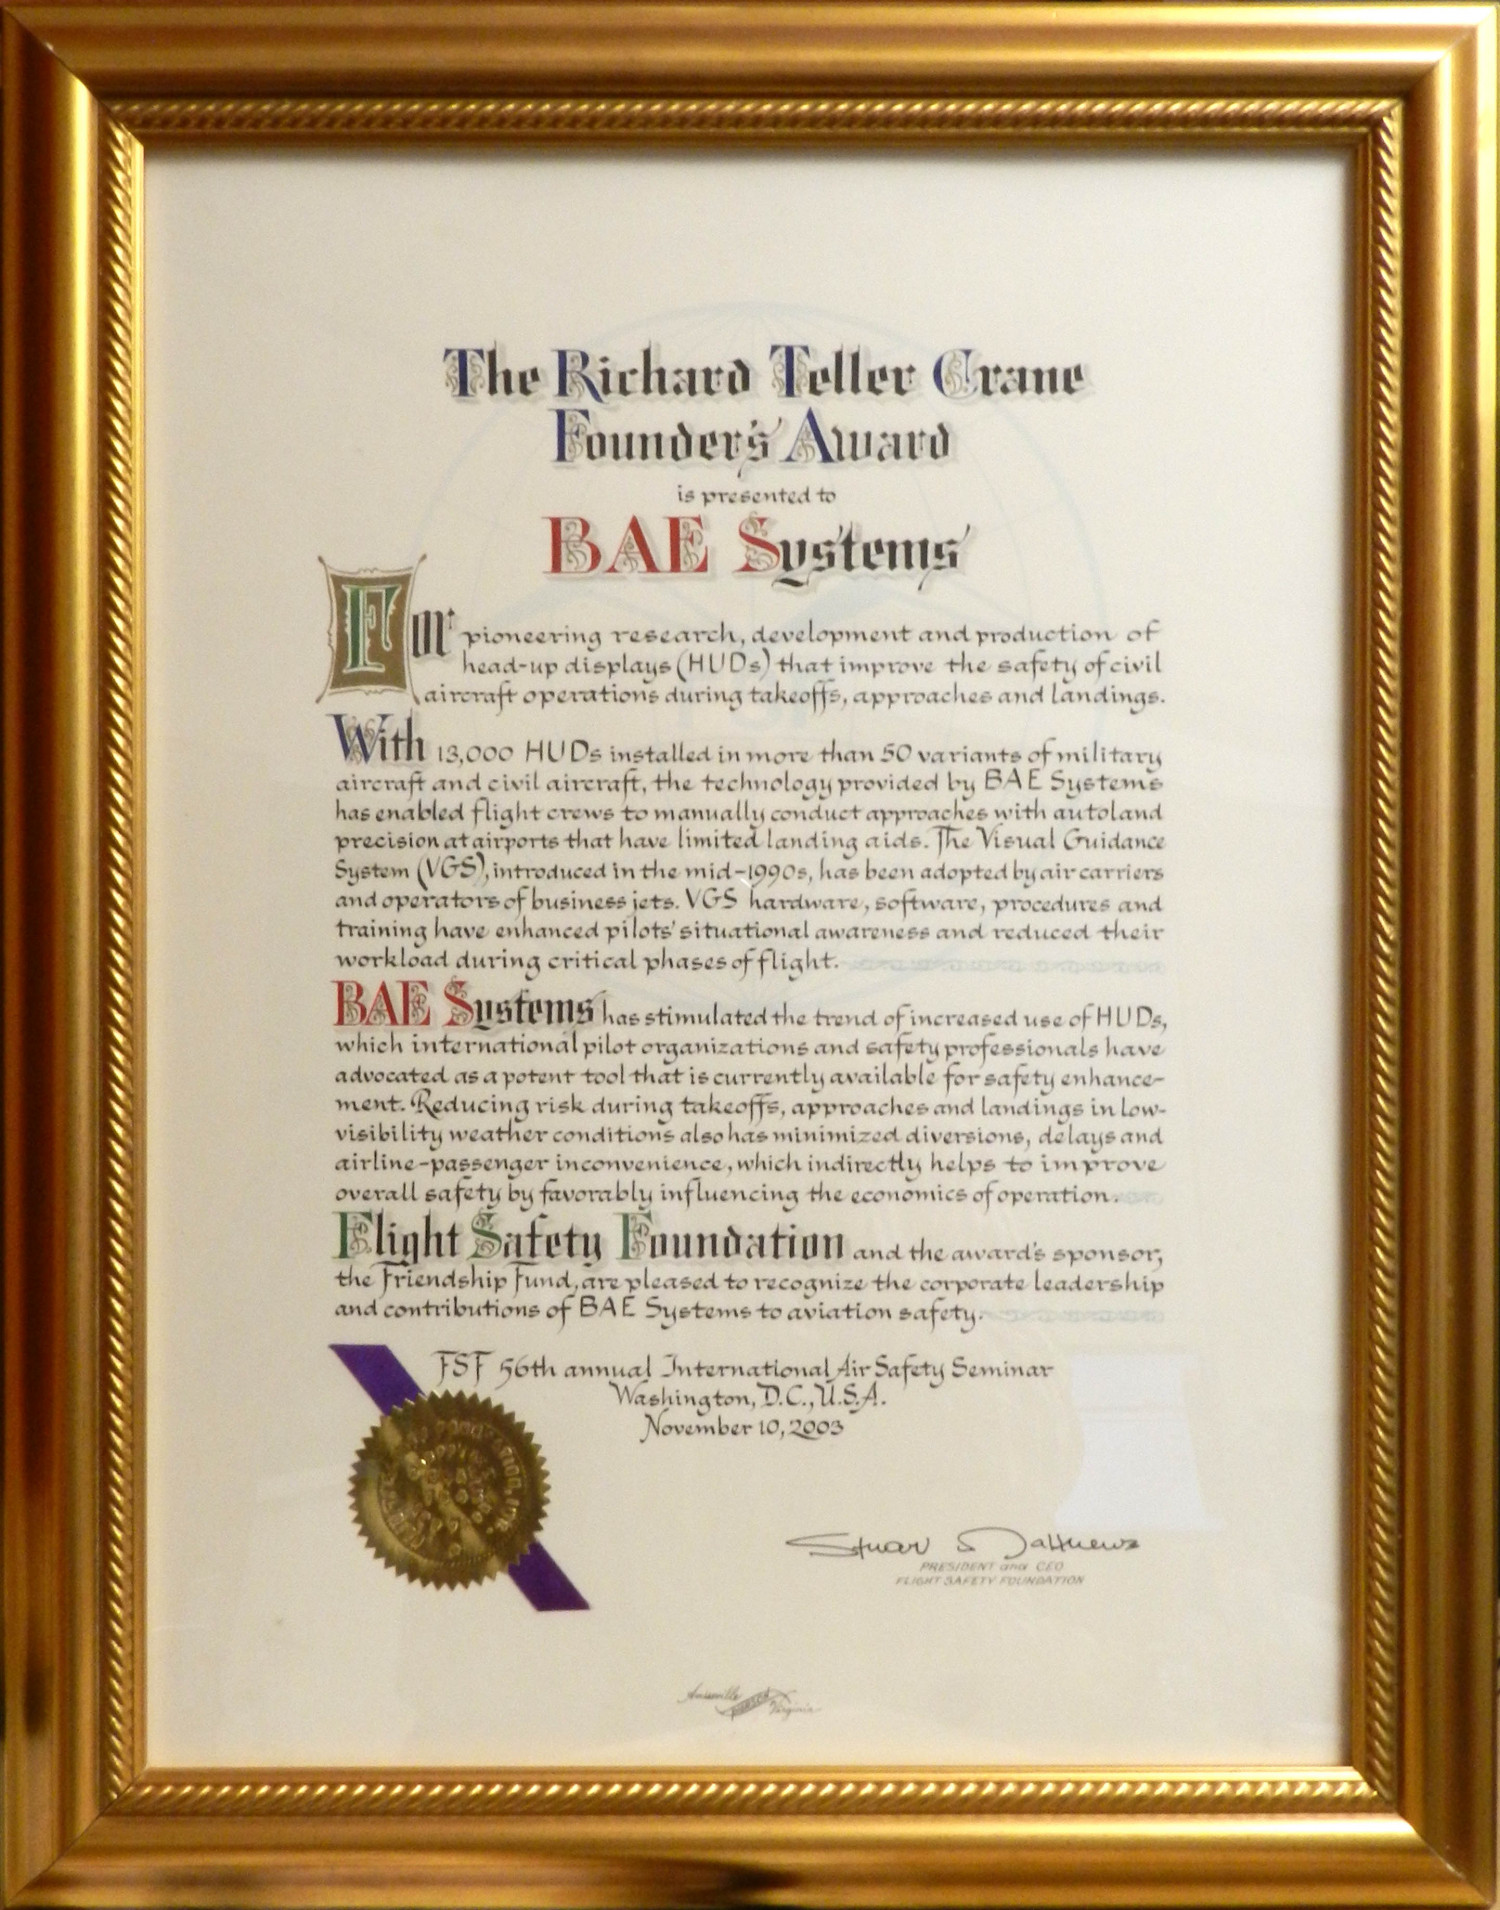 Flight Safety Foundation Award to BAE Systems